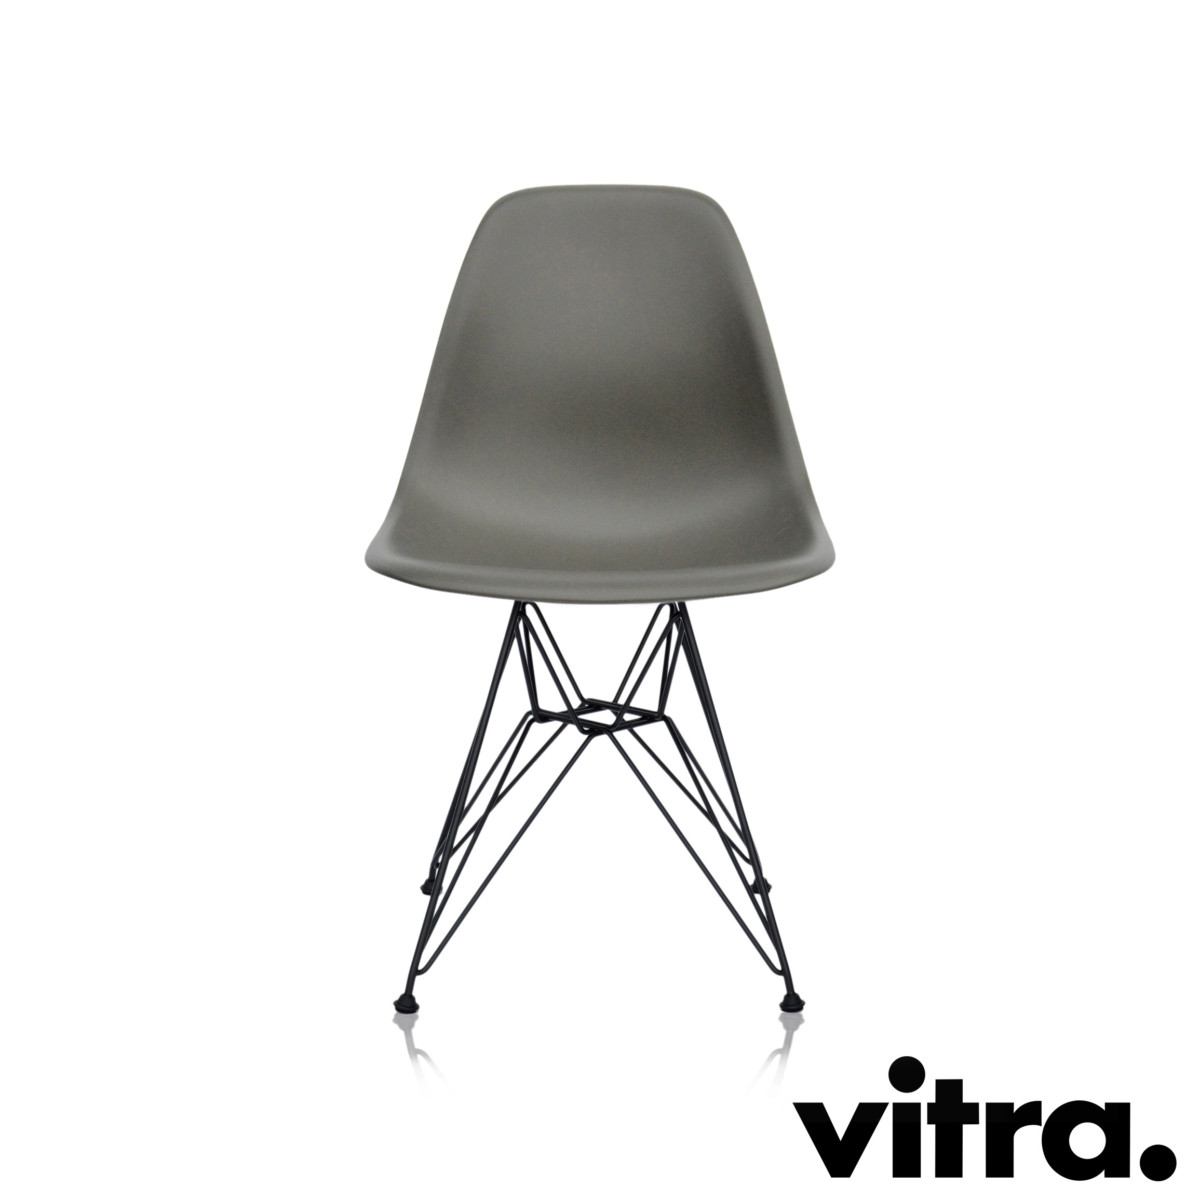 vitra eames plastic side chair basalt for 249 special price